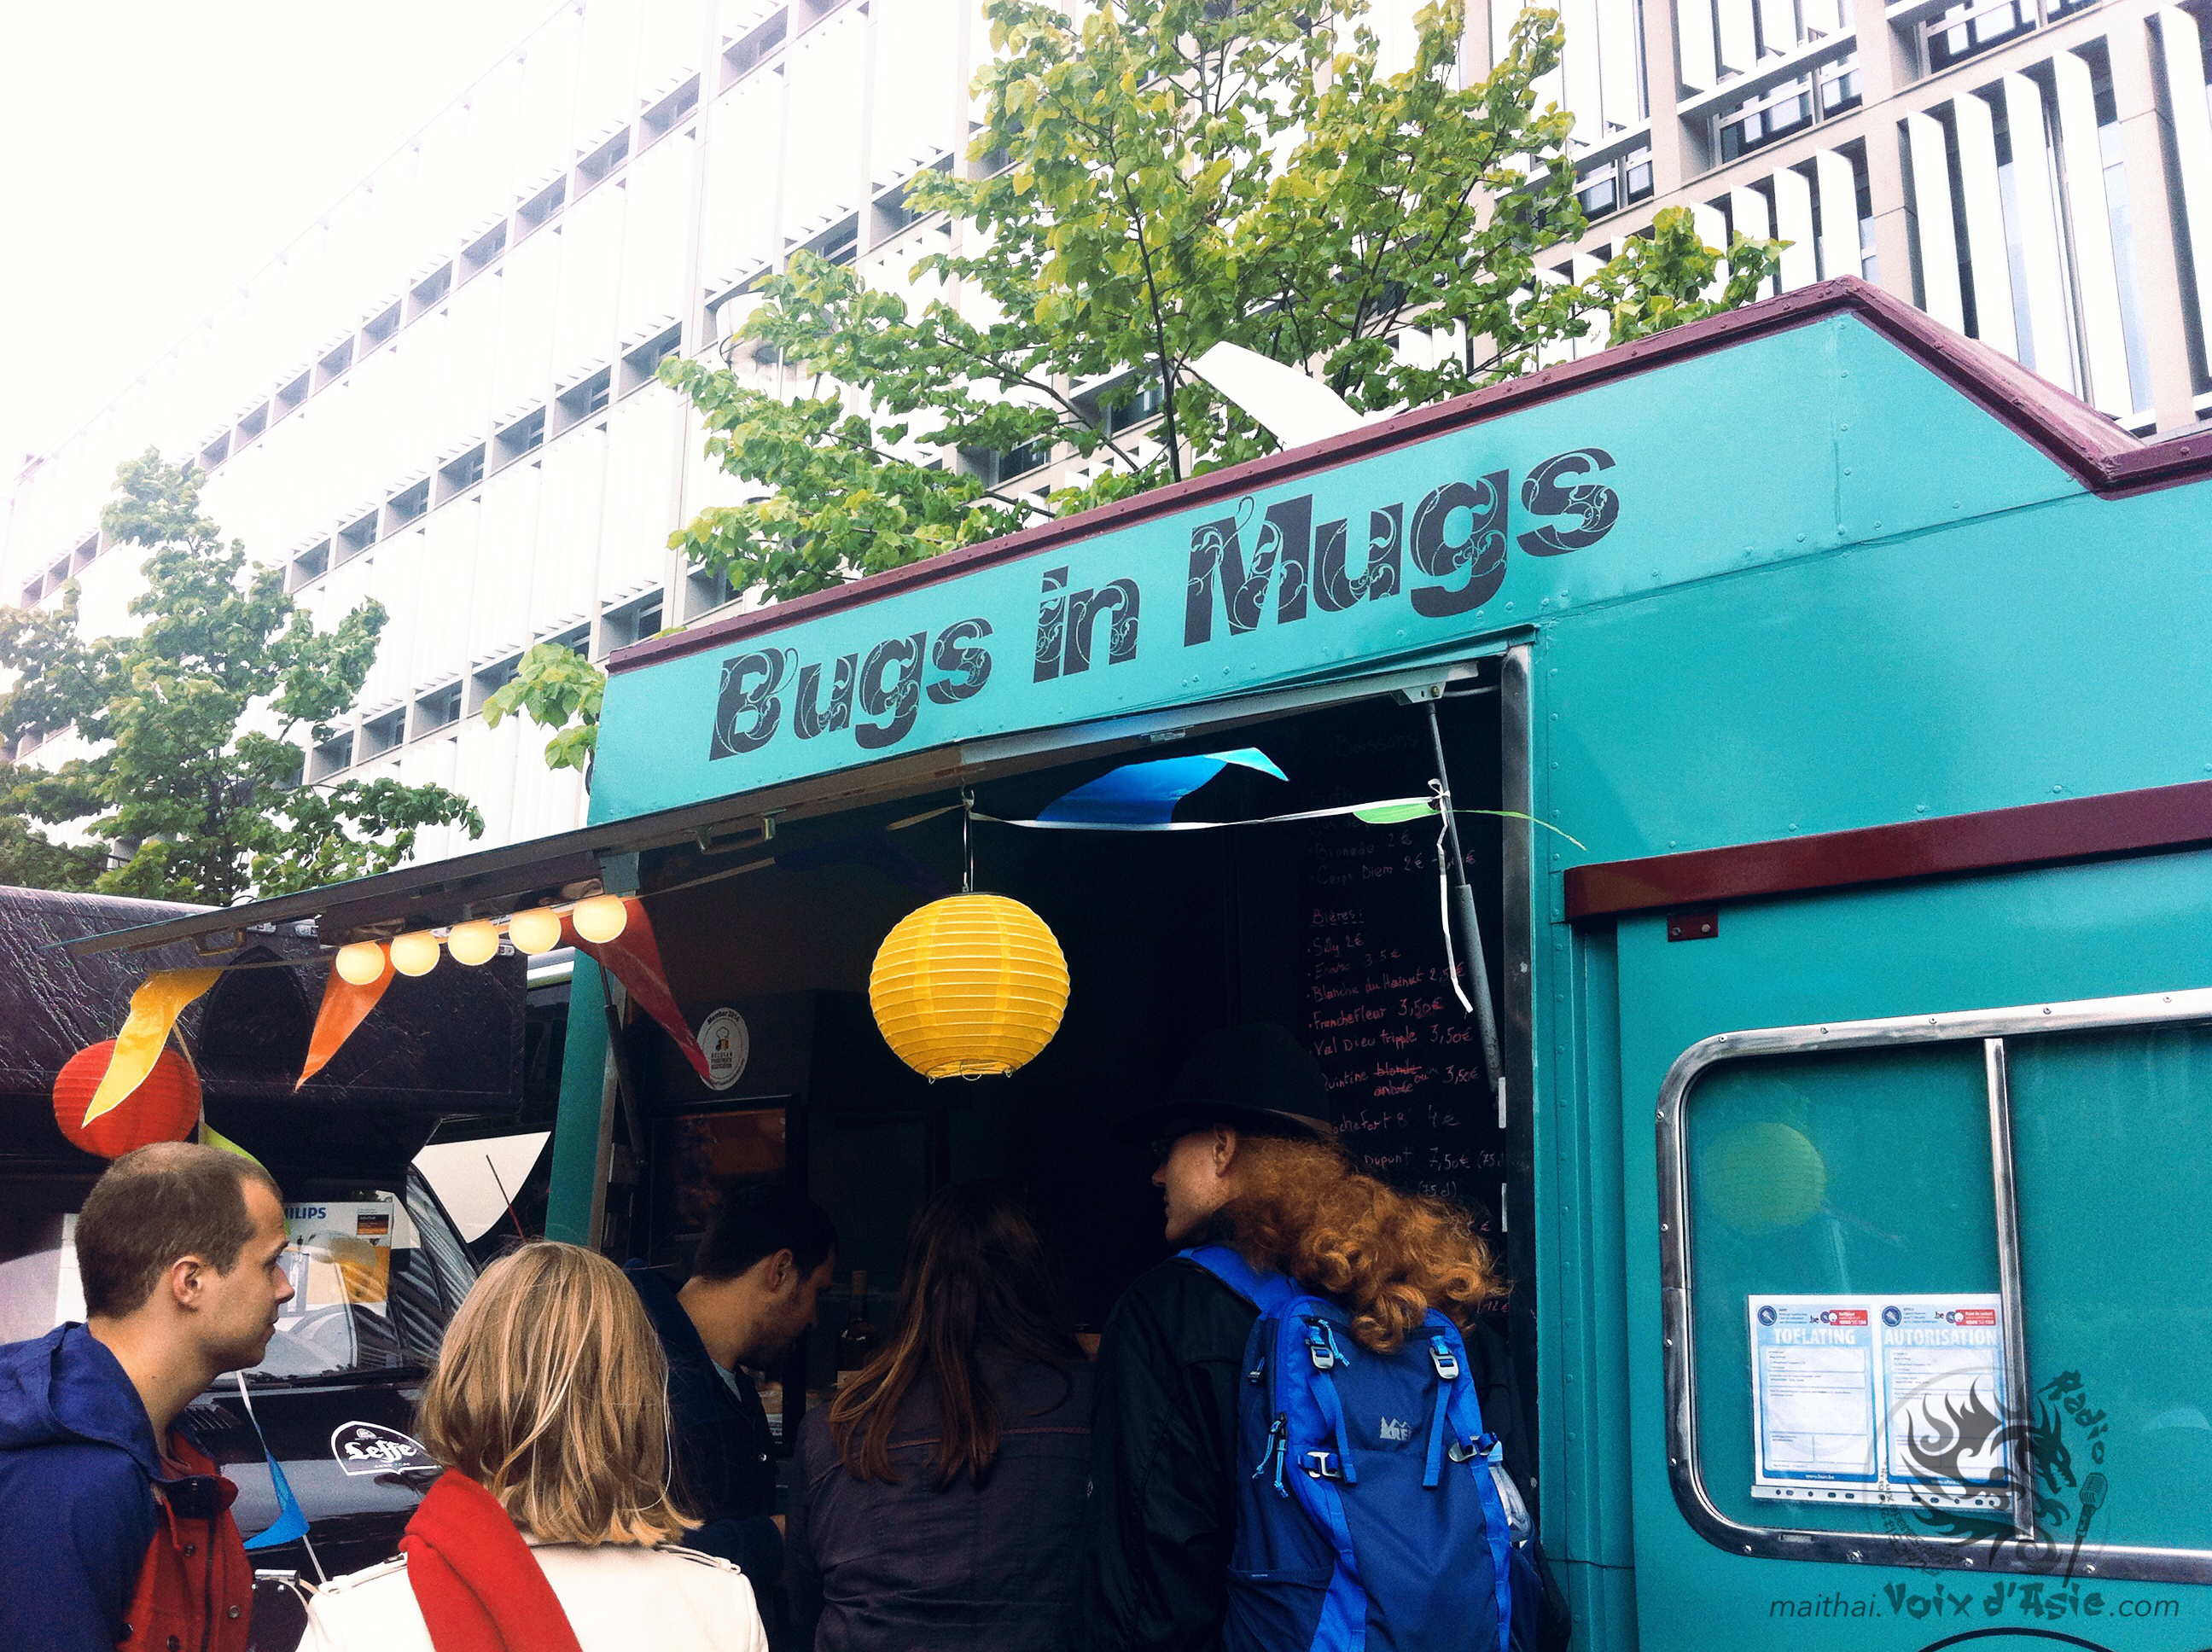 Brussels Foodtruck Festival 2015 | Bugs in Mugs Truck